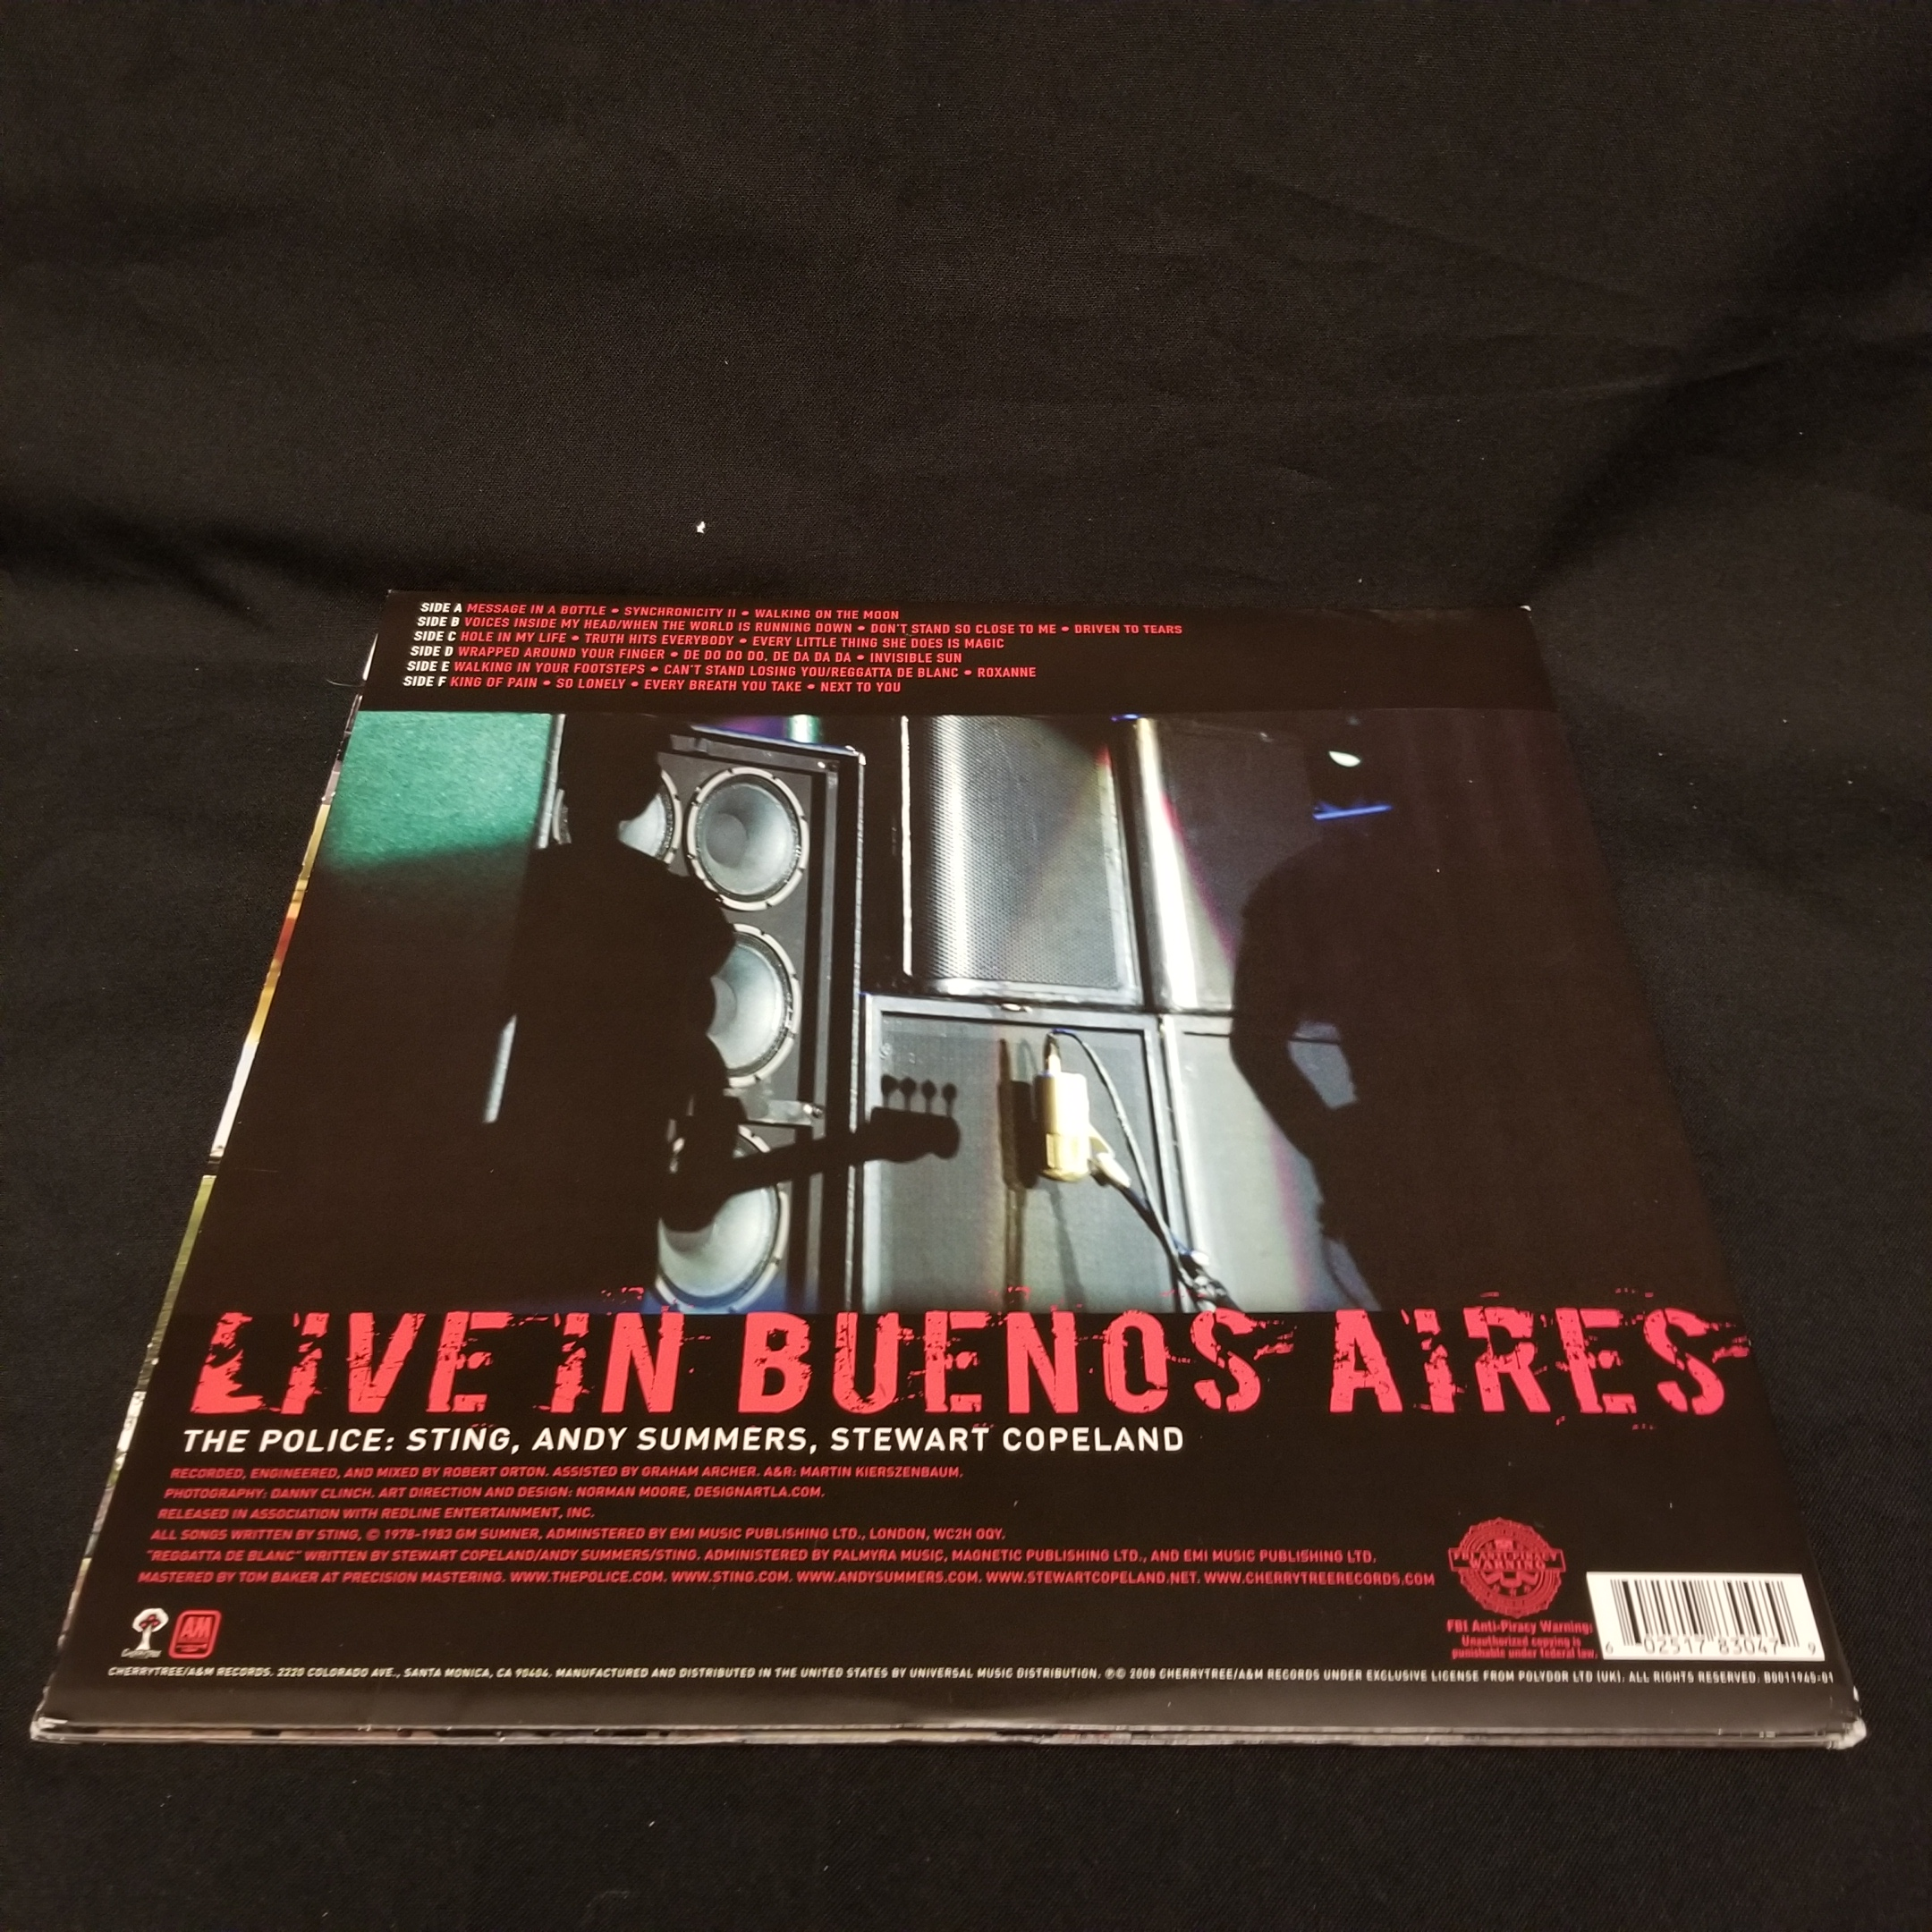 The Police - Certifiable (Live In Buenos Aires) LP NM 2008 Sting Copeland  Summers